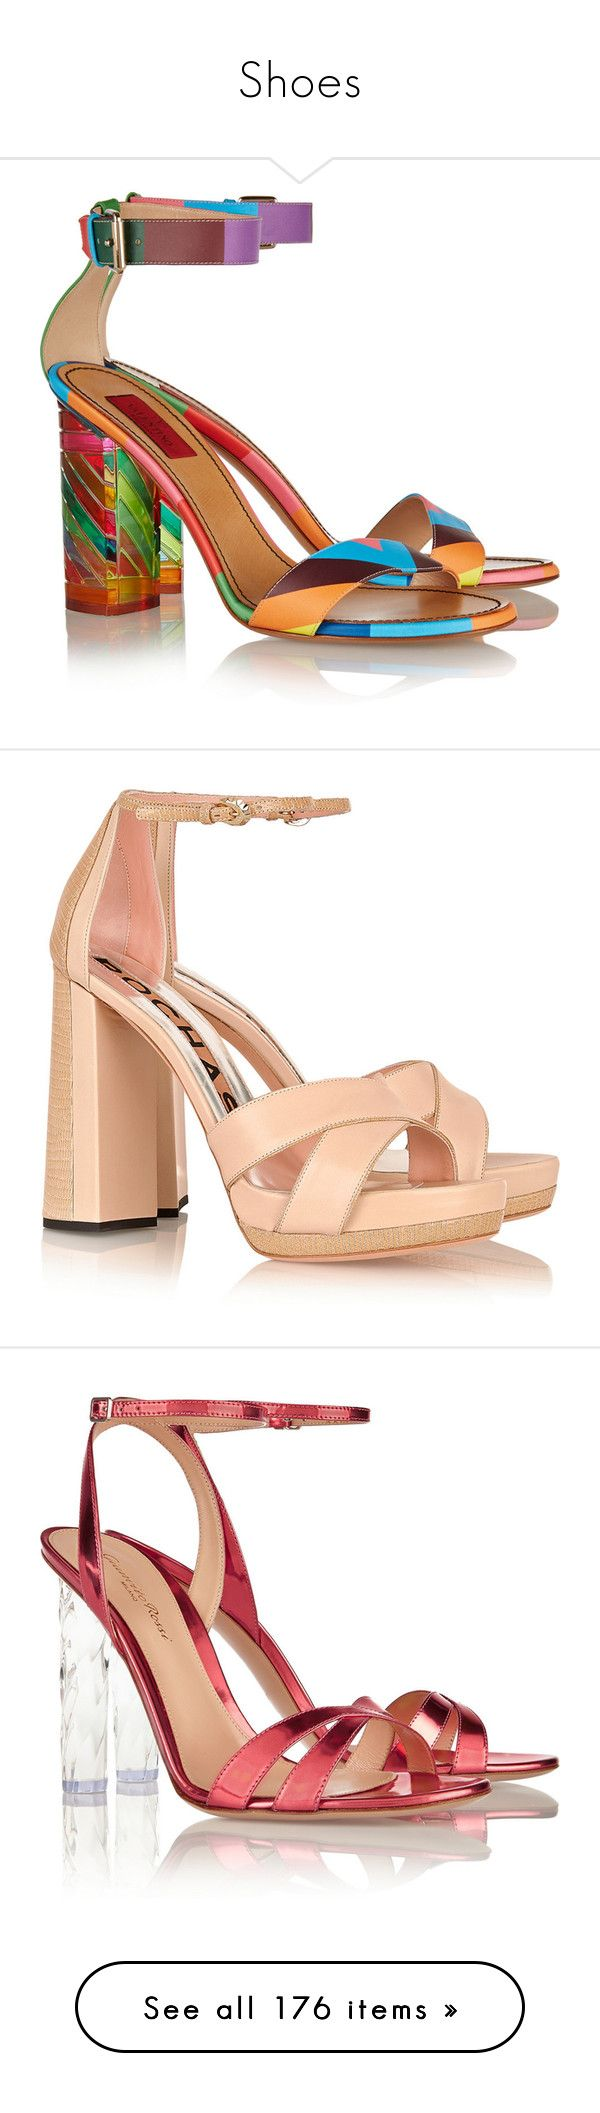 """""""Shoes"""" by bliznec ❤ liked on Polyvore featuring shoes, sandals, heels, high heels, valentino, high heel shoes, ankle strap heel sandals, block heel shoes, ankle wrap sandals and valentino sandals"""